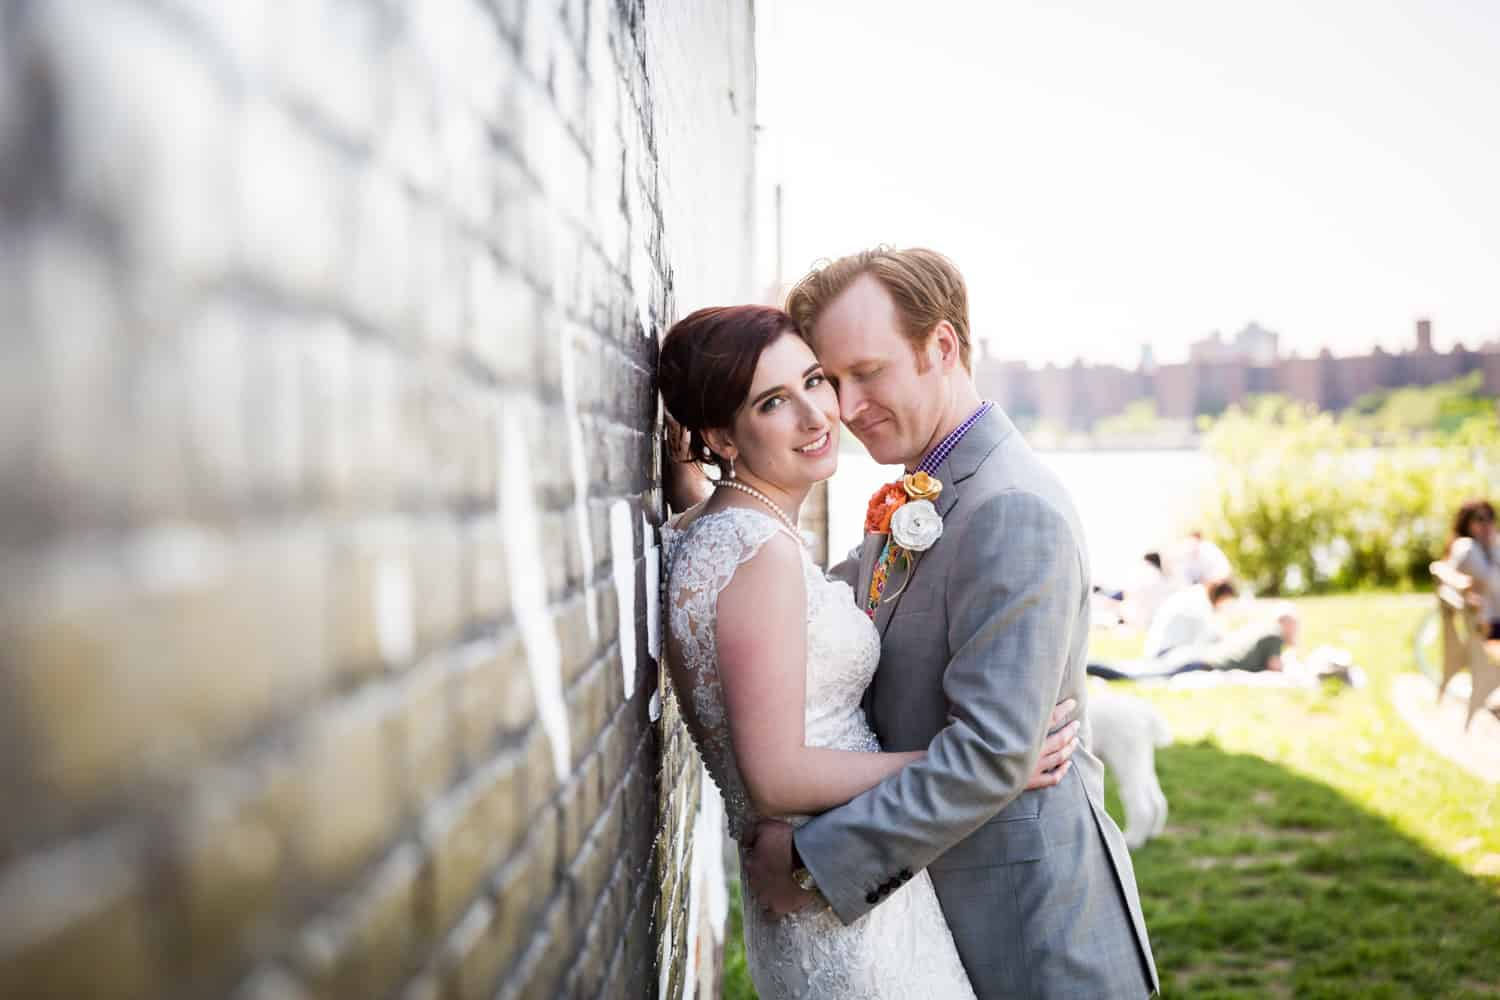 Bride and groom leaning against brick wall at a Greenpoint Loft wedding